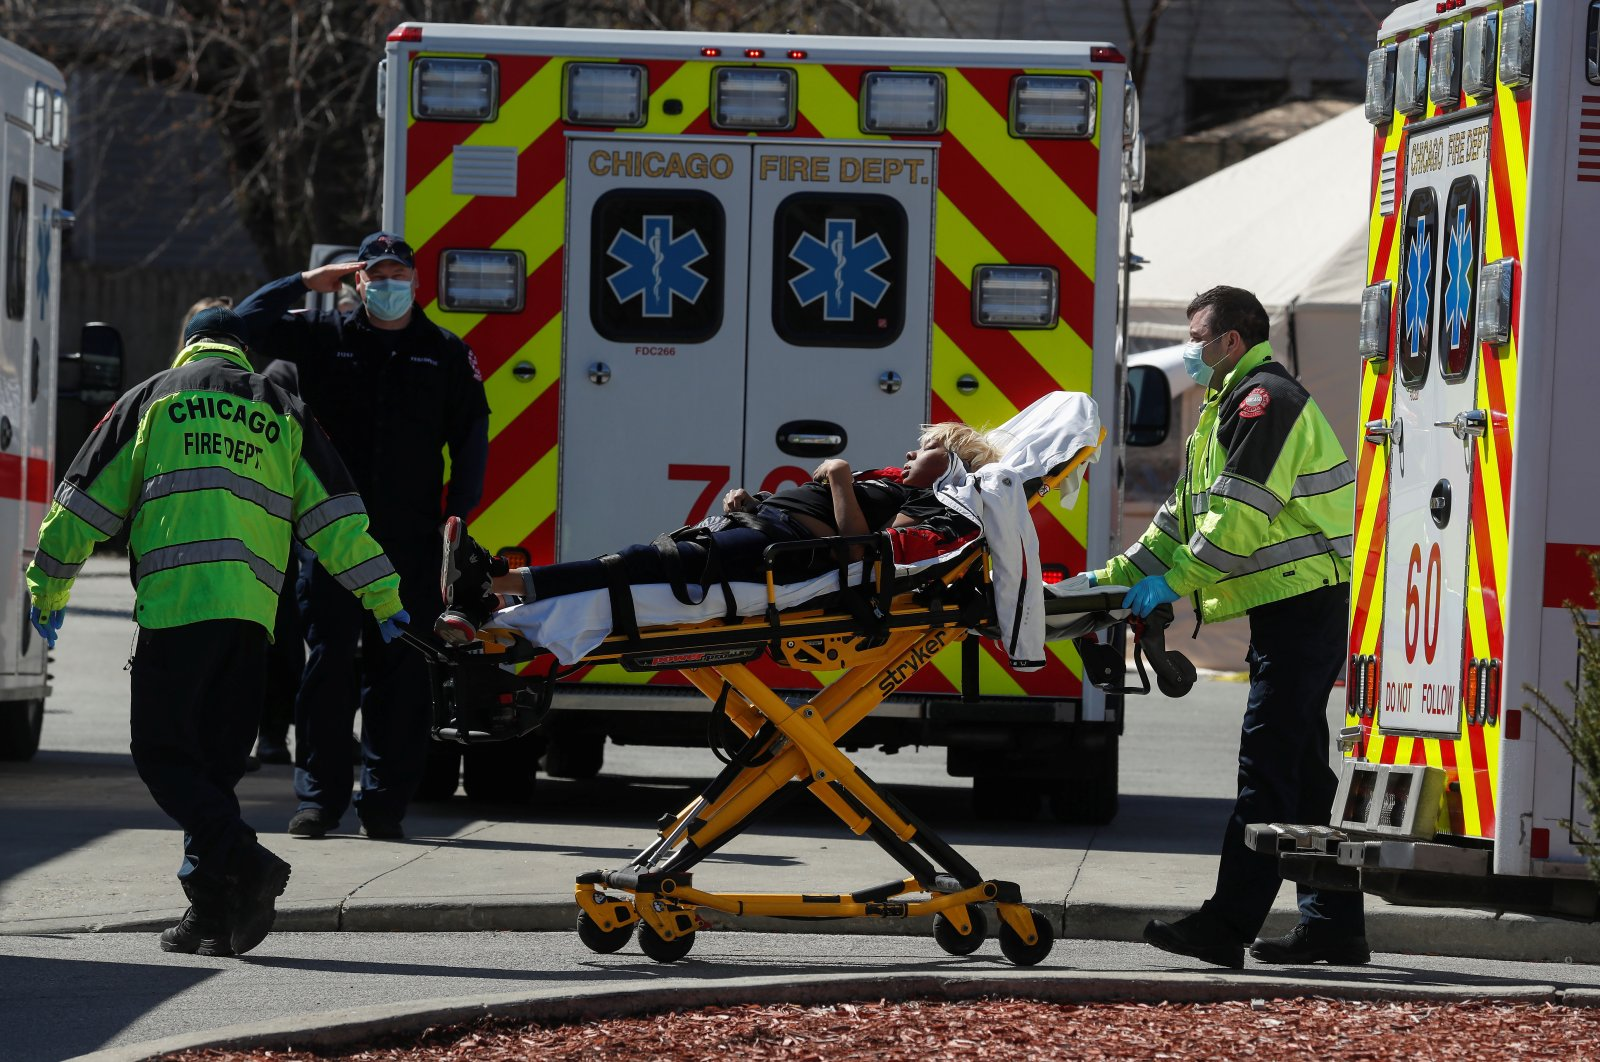 A woman is taken from a Chicago Fire Department ambulance into the emergency room at Roseland Community Hospital, as the spread of the coronavirus disease (COVID-19) continues, in the South Side of Chicago, Illinois, U.S., April 21, 2020. (Reuters Photo)